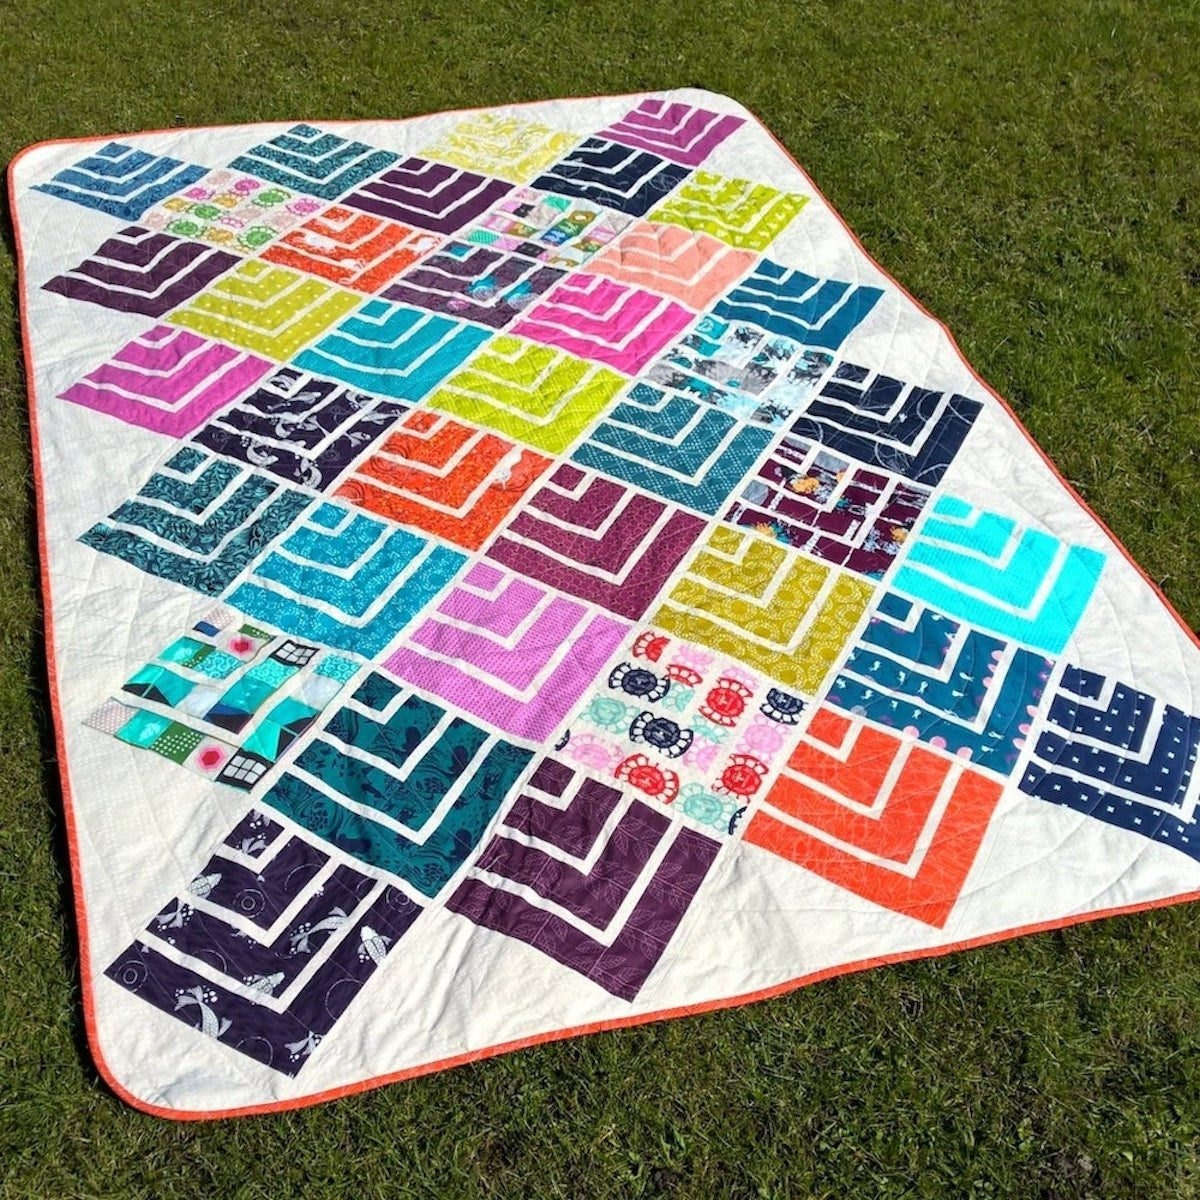 A beginner-friendly quilt pattern from Etsy